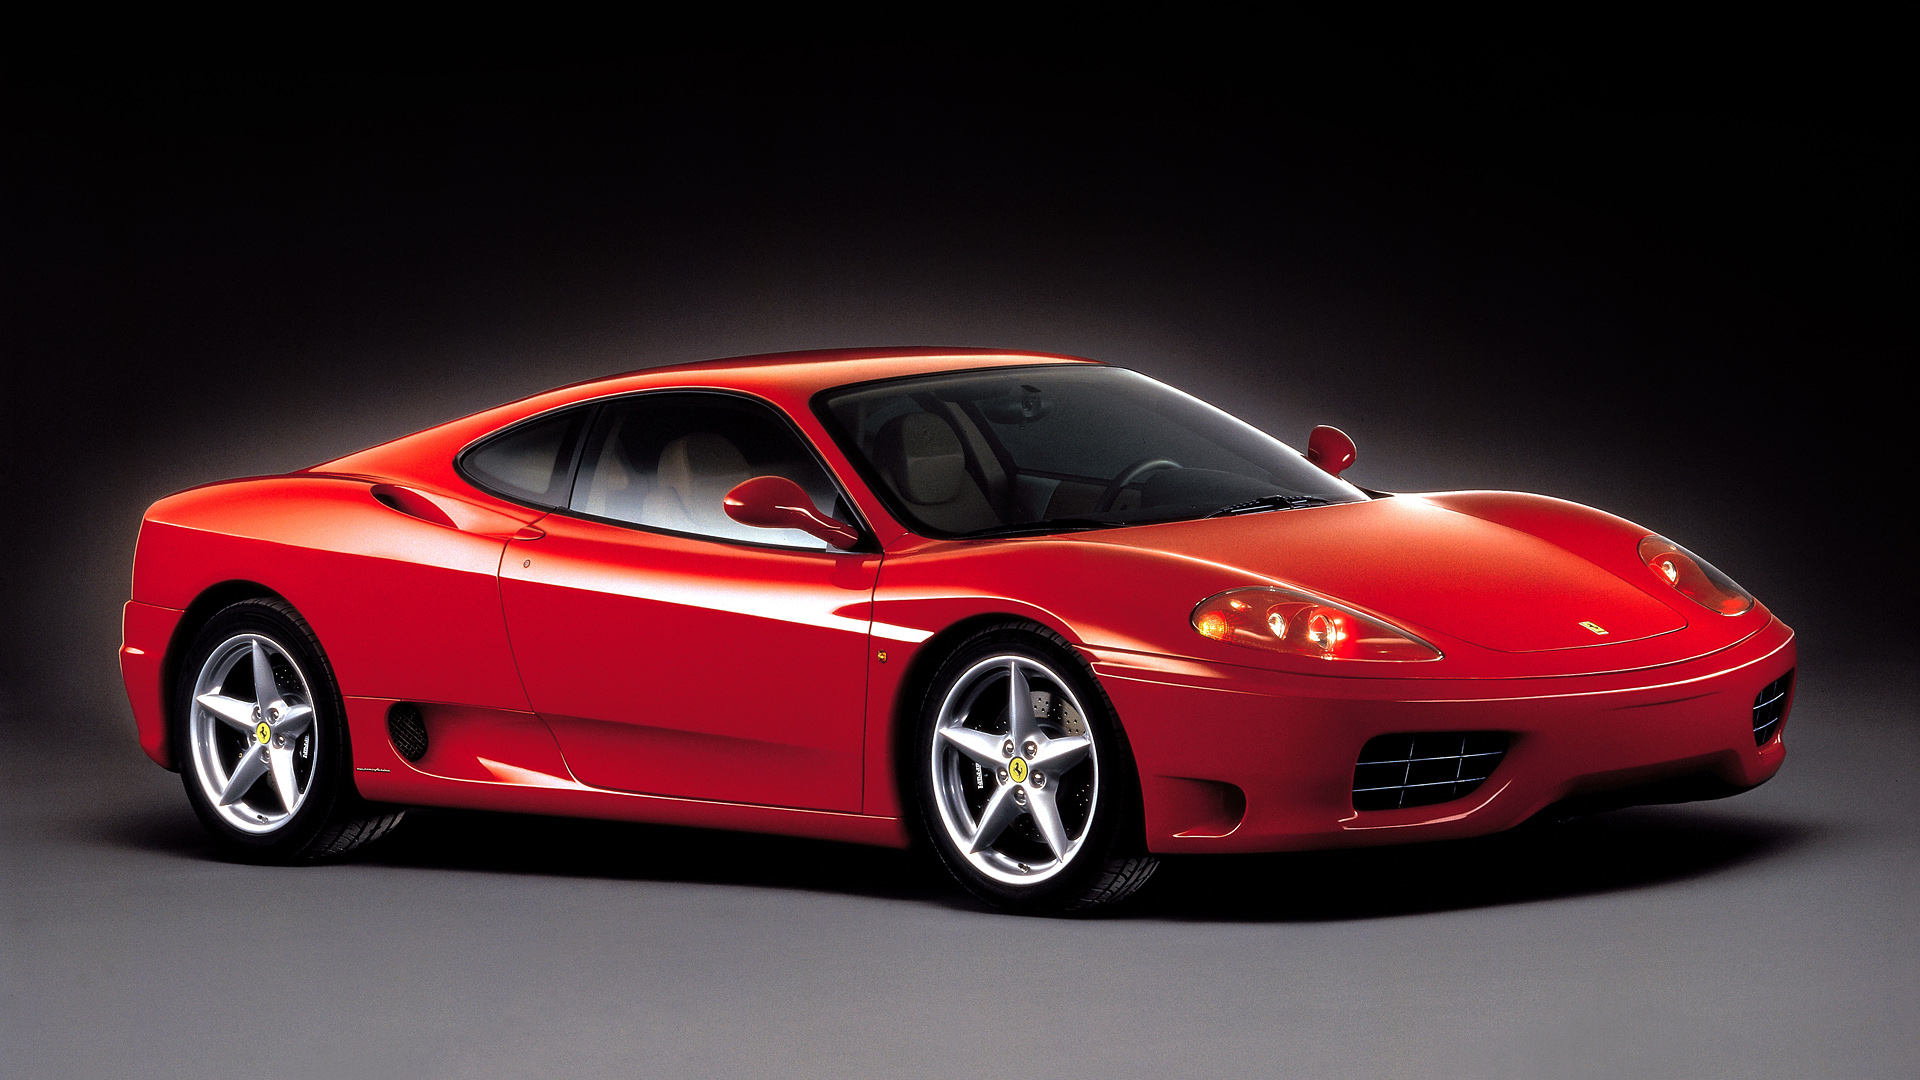 ferrari 360 modena hamann hd desktop wallpapers 4k hd. Black Bedroom Furniture Sets. Home Design Ideas